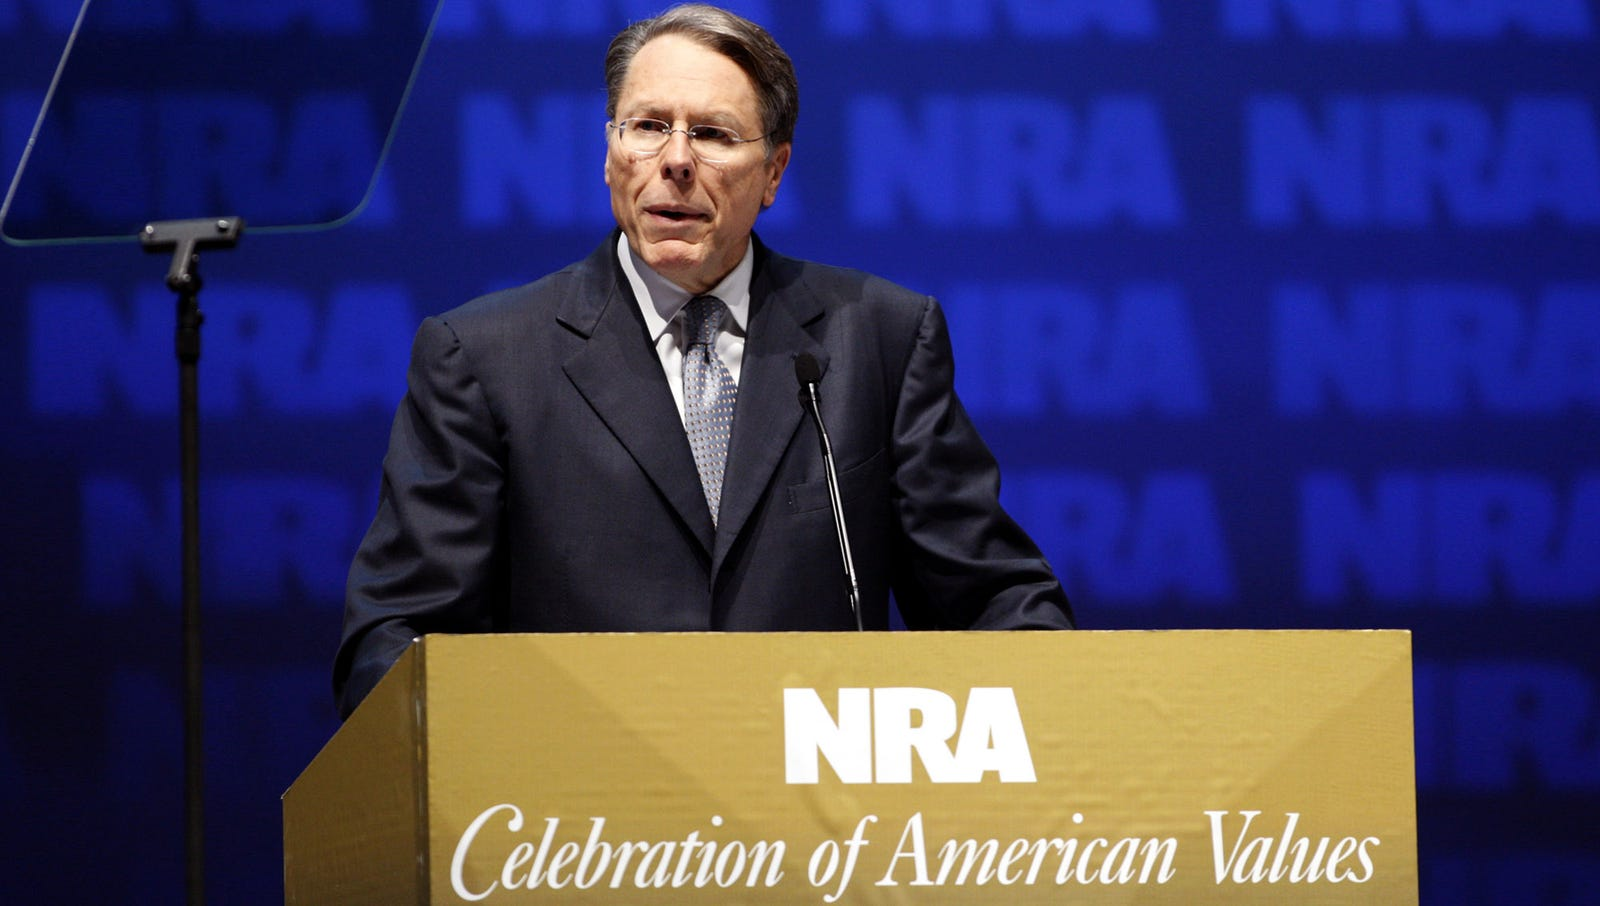 NRA Sets 1,000 Killed In School Shooting As Amount It Would Take For Them To Reconsider Much Of Anything